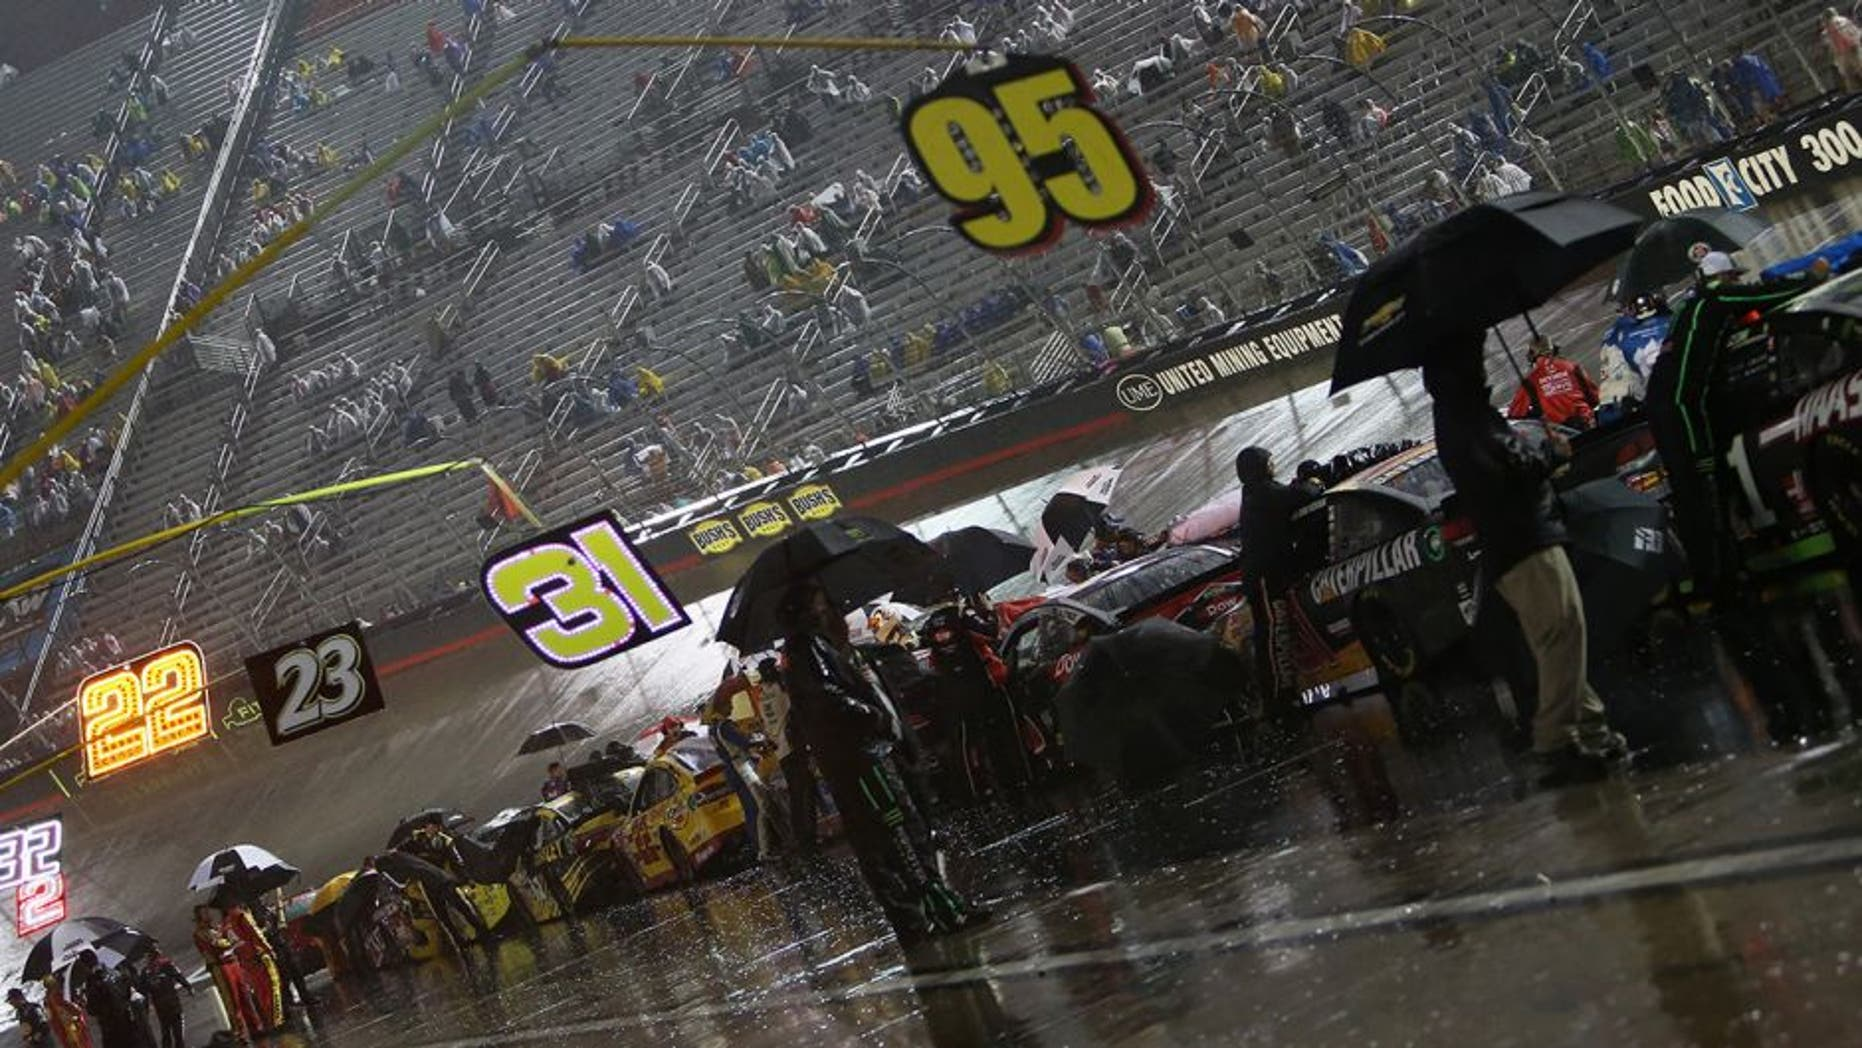 BRISTOL, TN - AUGUST 20: Cars line pit road during the second rain delay of the NASCAR Sprint Cup Series Bass Pro Shops NRA Night Race at Bristol Motor Speedway on August 20, 2016 in Bristol, Tennessee. (Photo by Rey Del Rio/Getty Images)